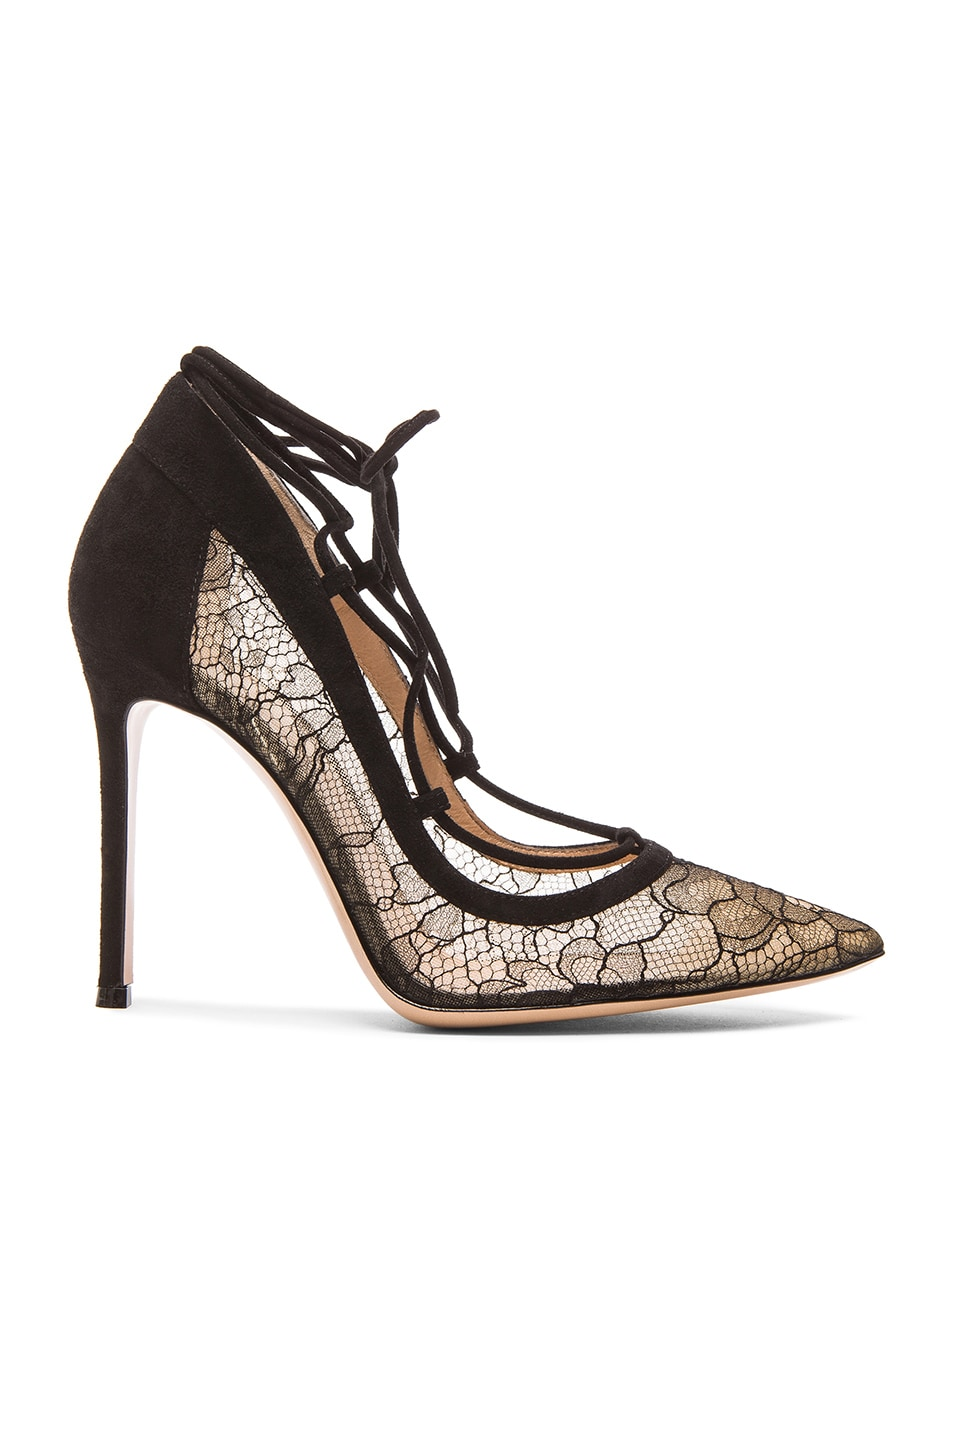 Gianvito Rossi Suede Lace-Tie Pumps how much for sale XllaF4hw9B